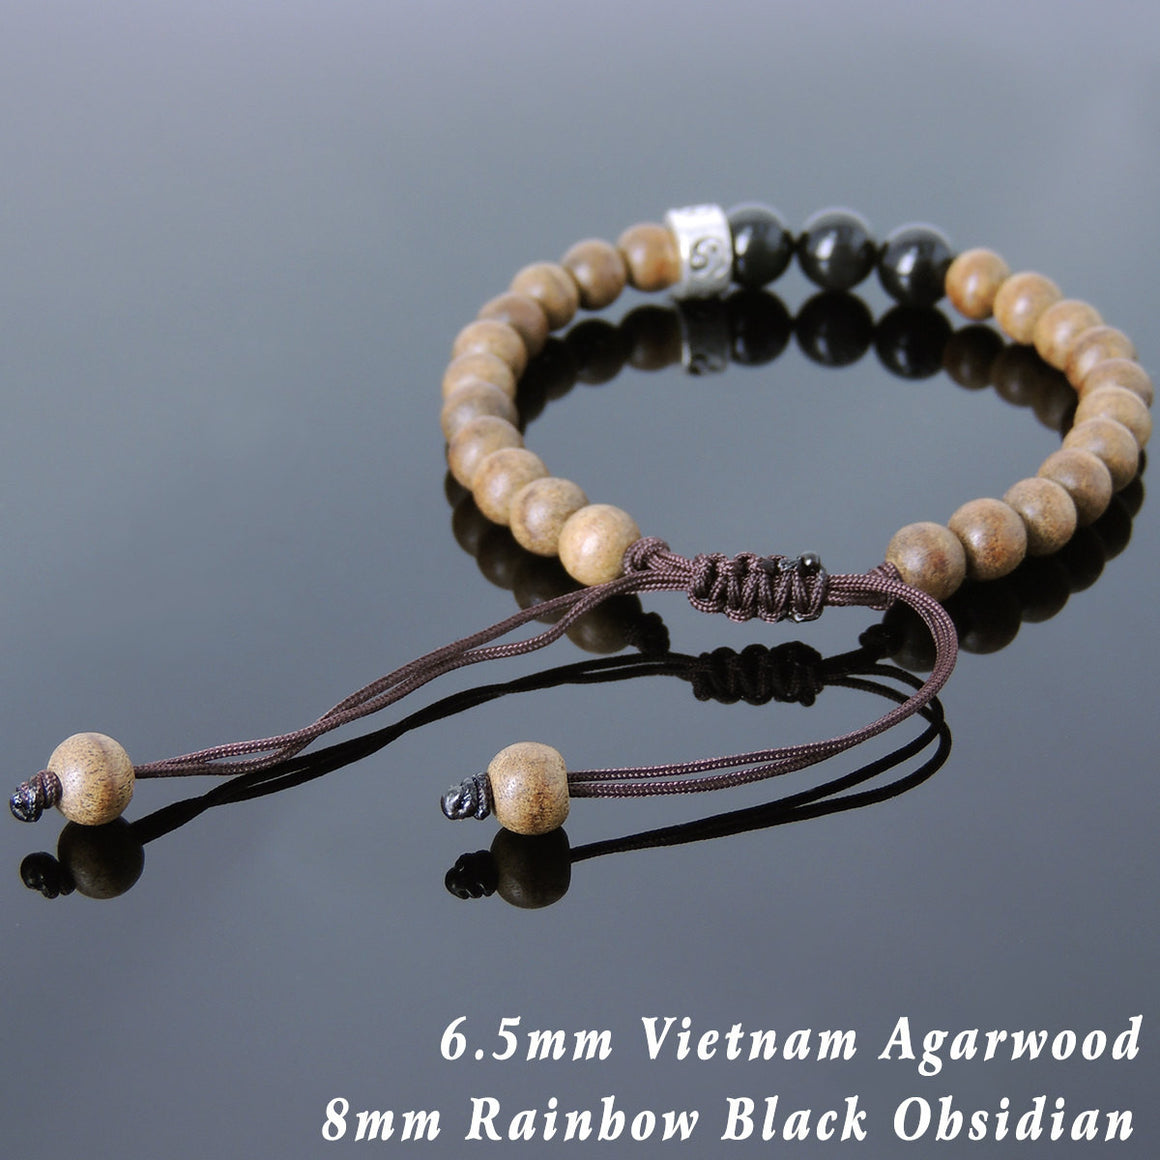 Rainbow Black Obsidian & Agarwood Mala Adjustable Bracelet with S925 Sterling Silver Ying Yang Taiji Bead - Handmade by Gem & Silver BR836